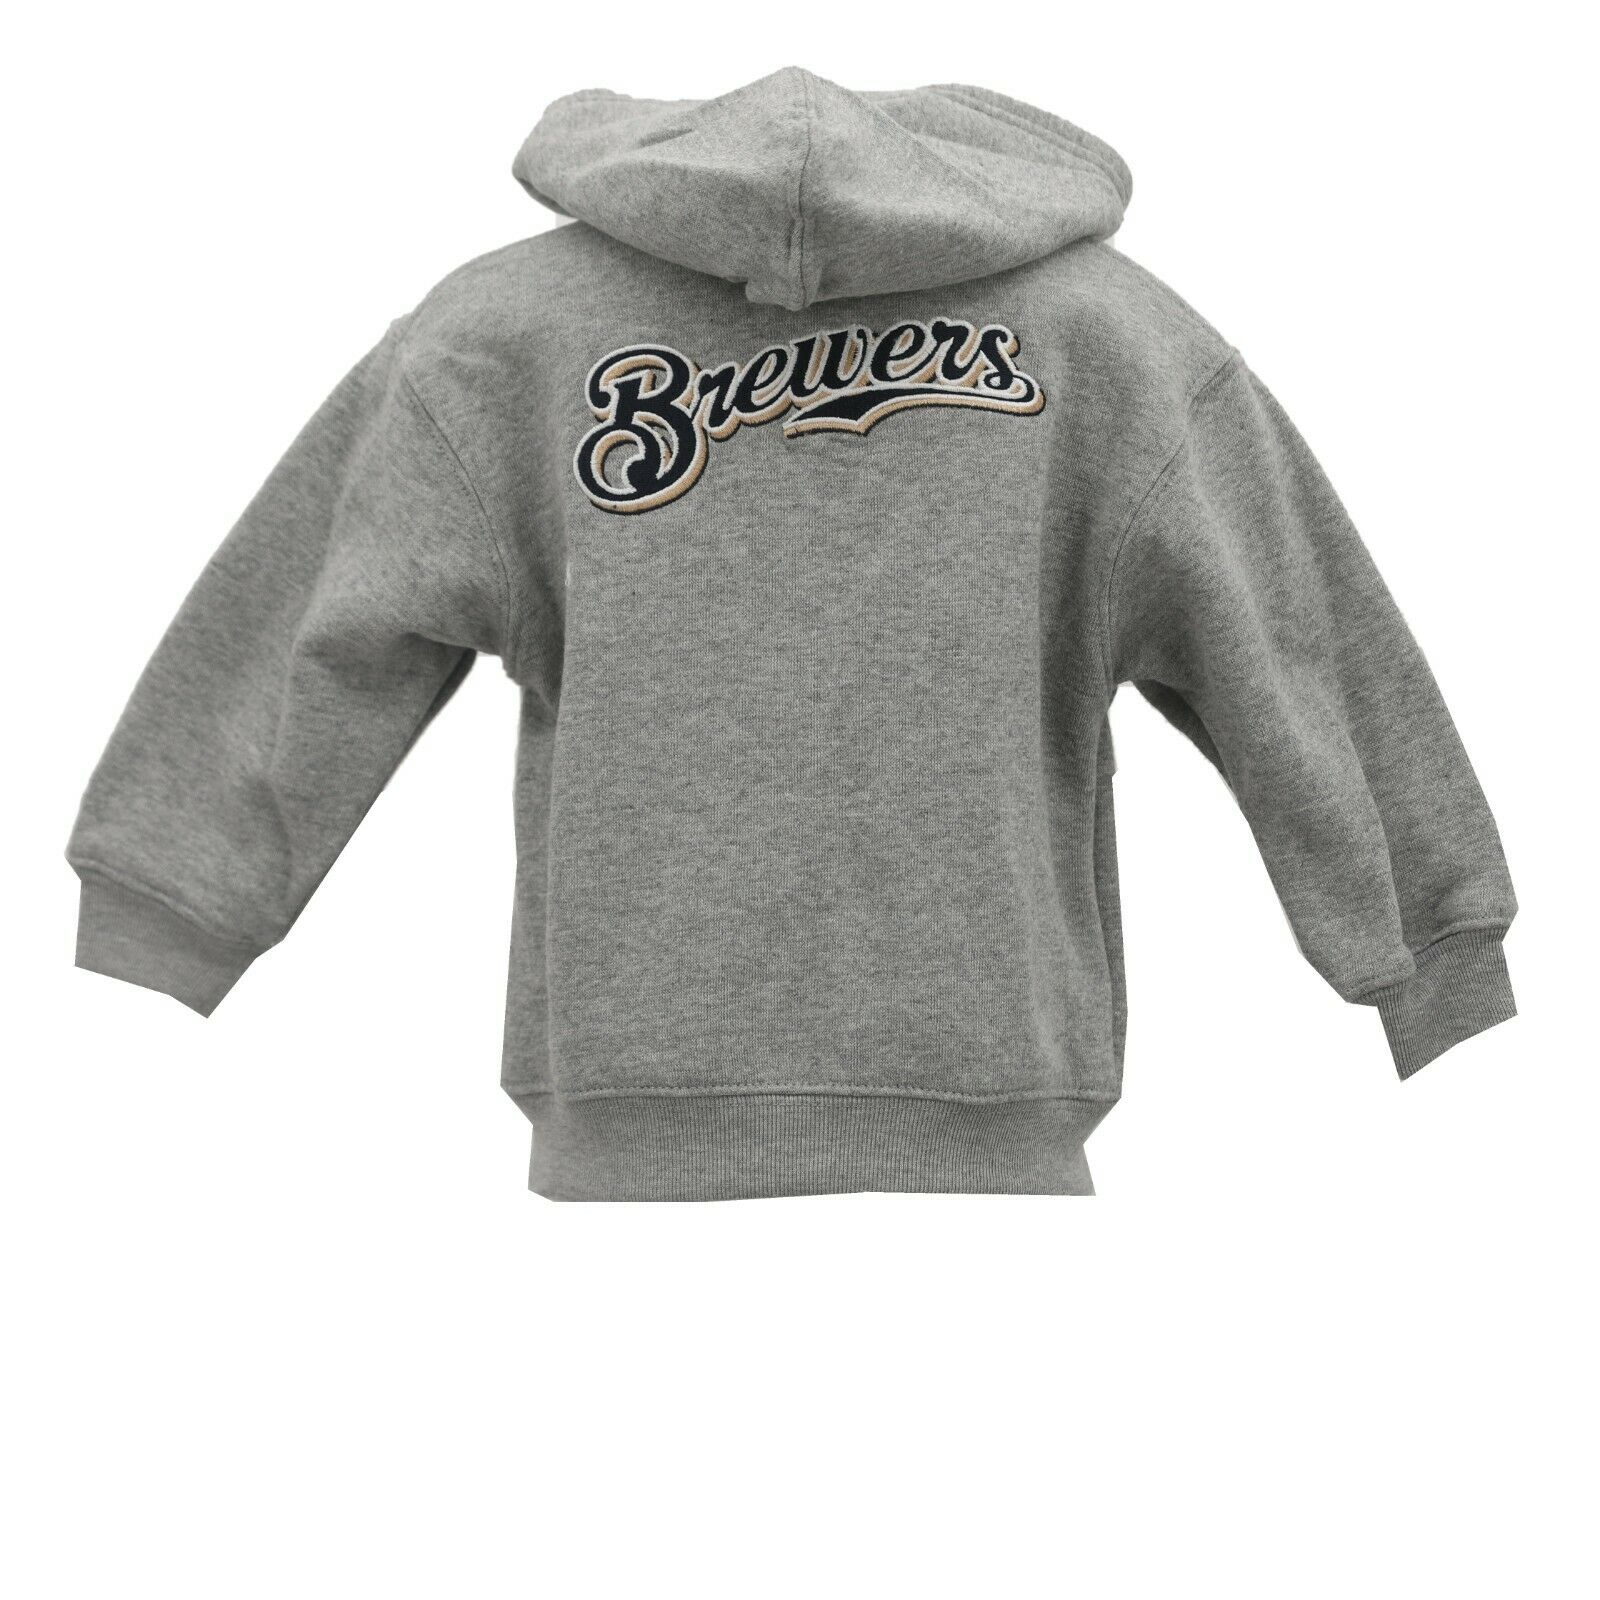 timeless design 6047f e0368 Details about Milwaukee Brewers Baby MLB Infant Toddler Girls Size Full Zip  Hooded Sweatshirt